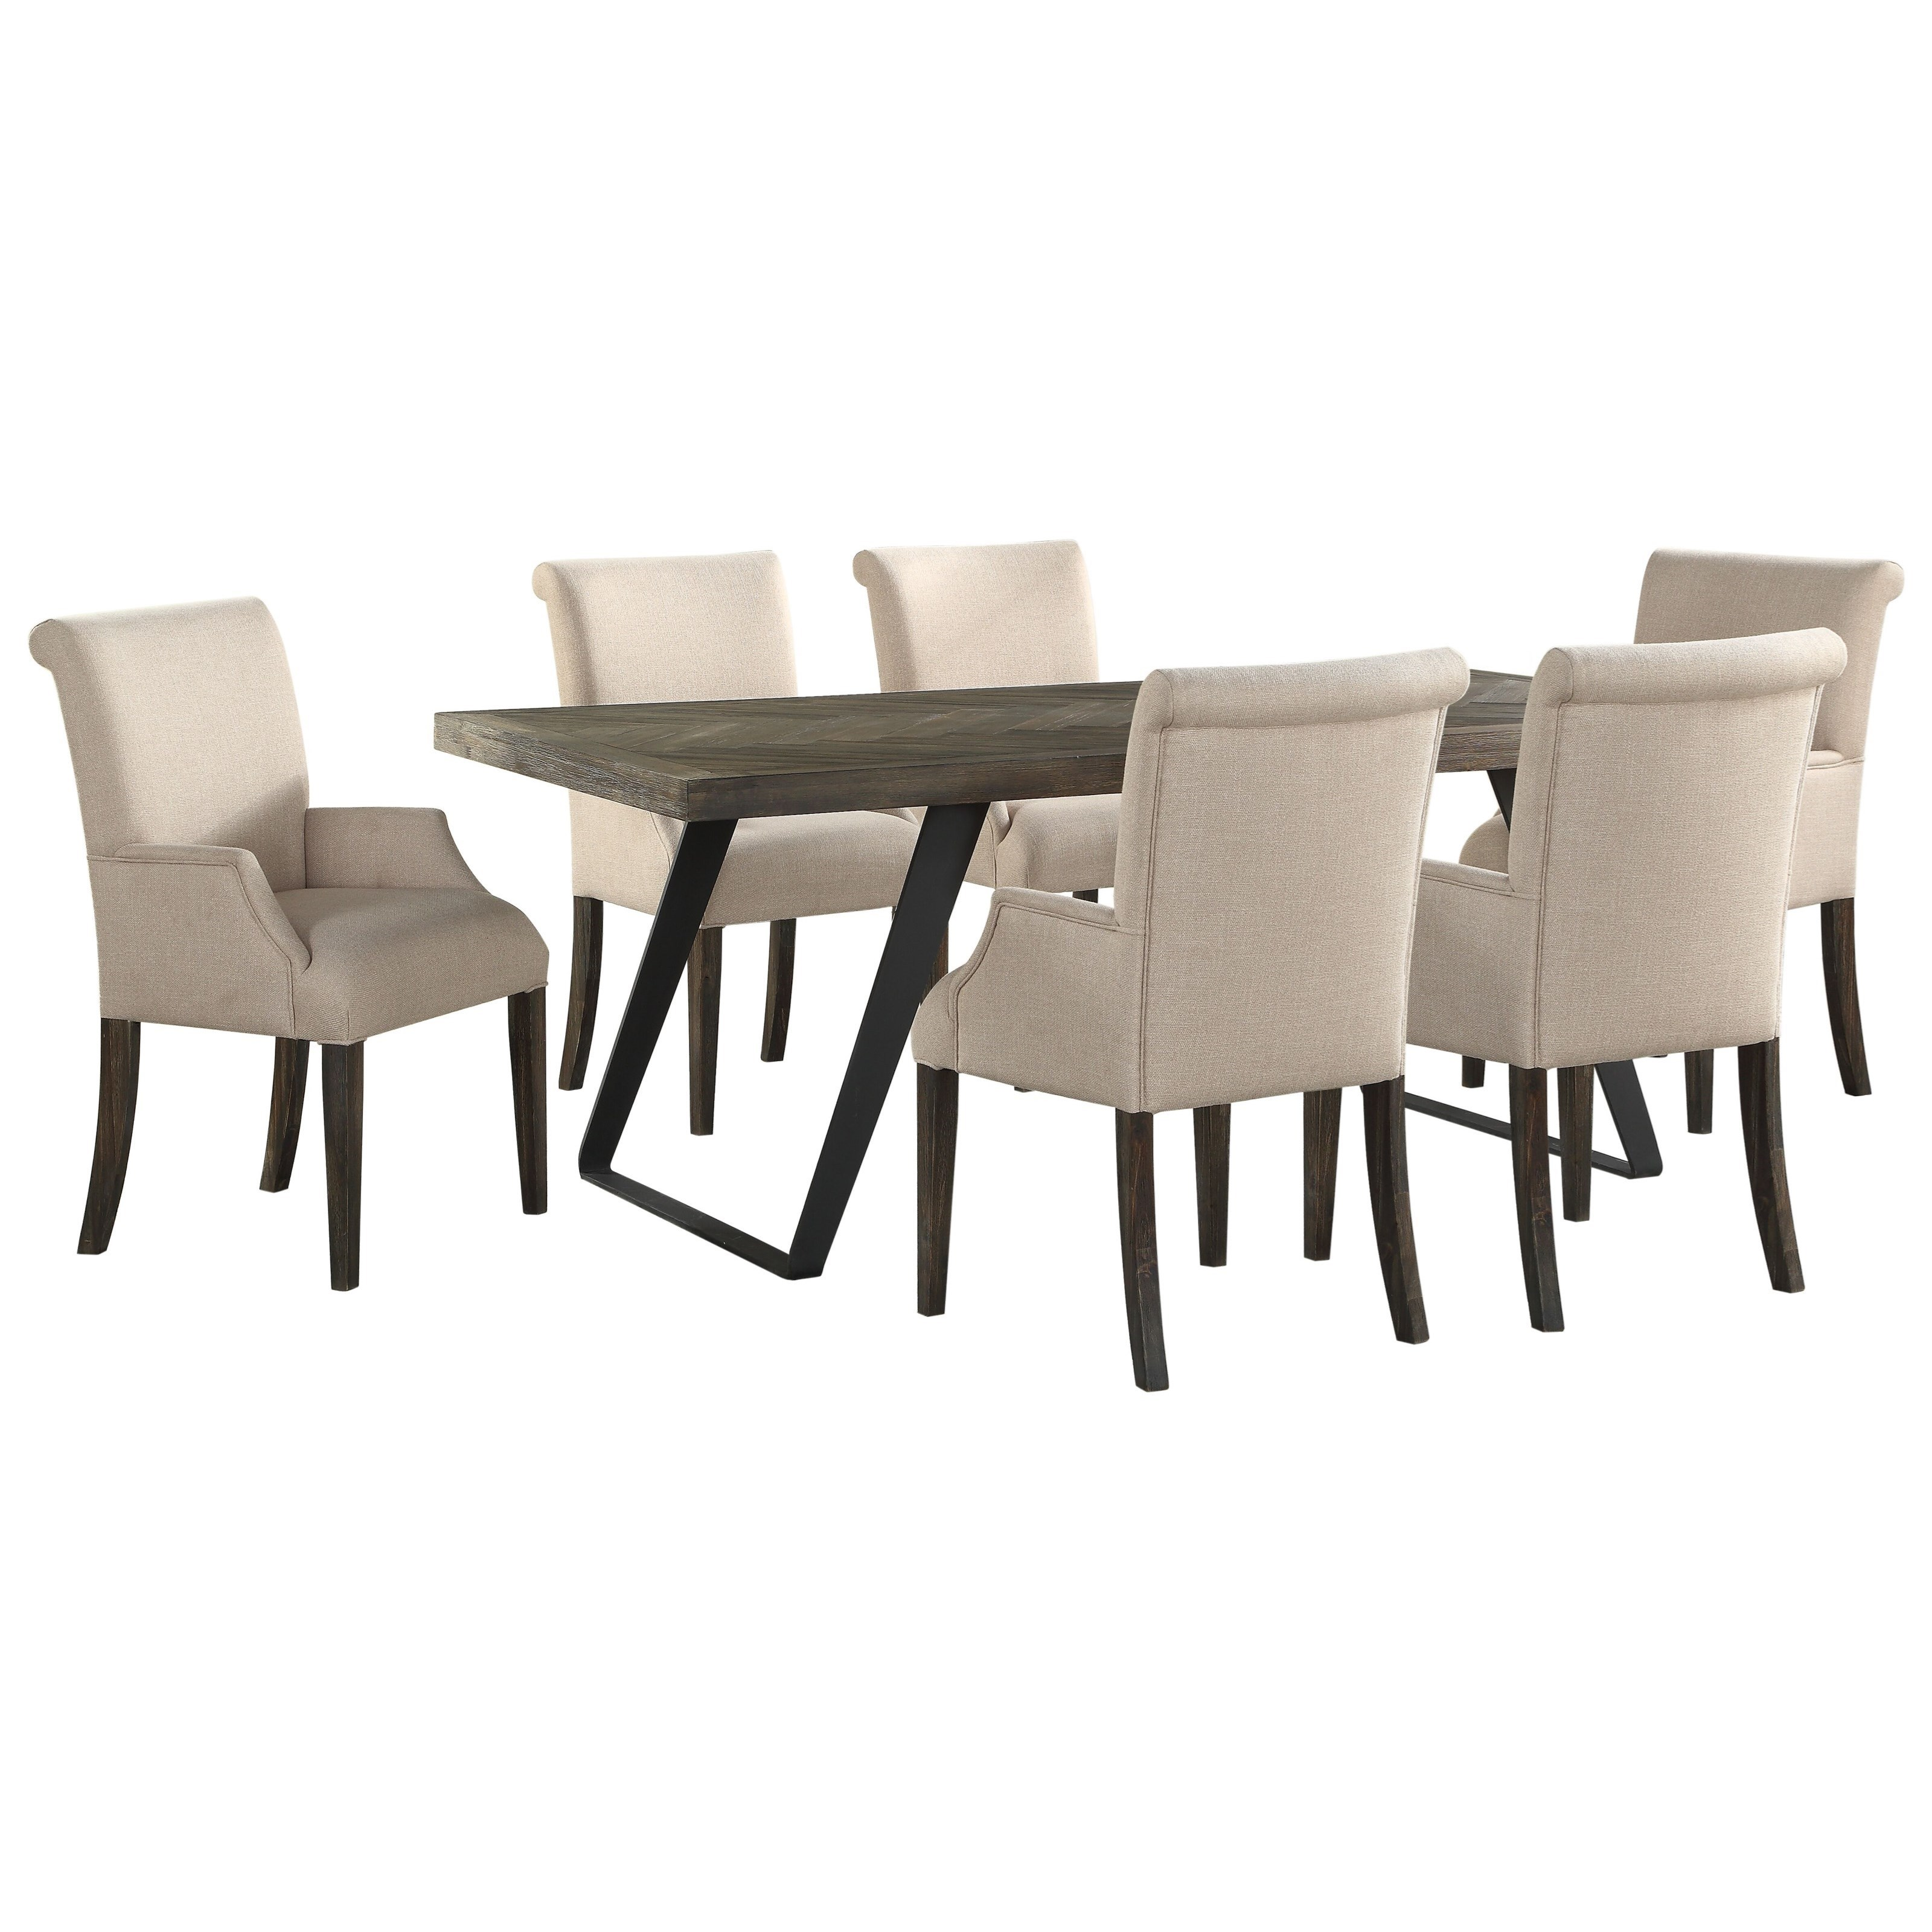 Aspen Court 7-Piece Table and Chair Set by Coast to Coast Imports at Zak's Home